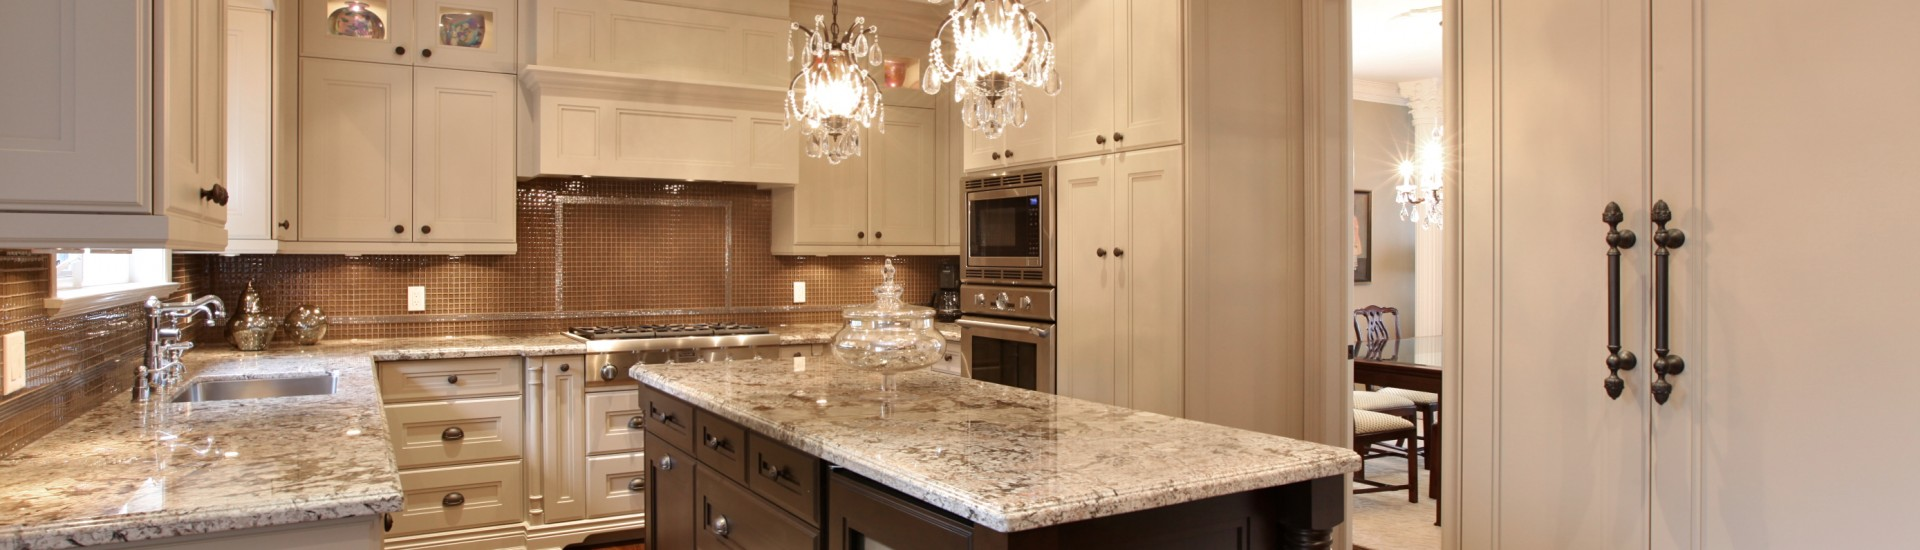 kitchens and baths laminate or engineered wood flooring for kitchen toronto california